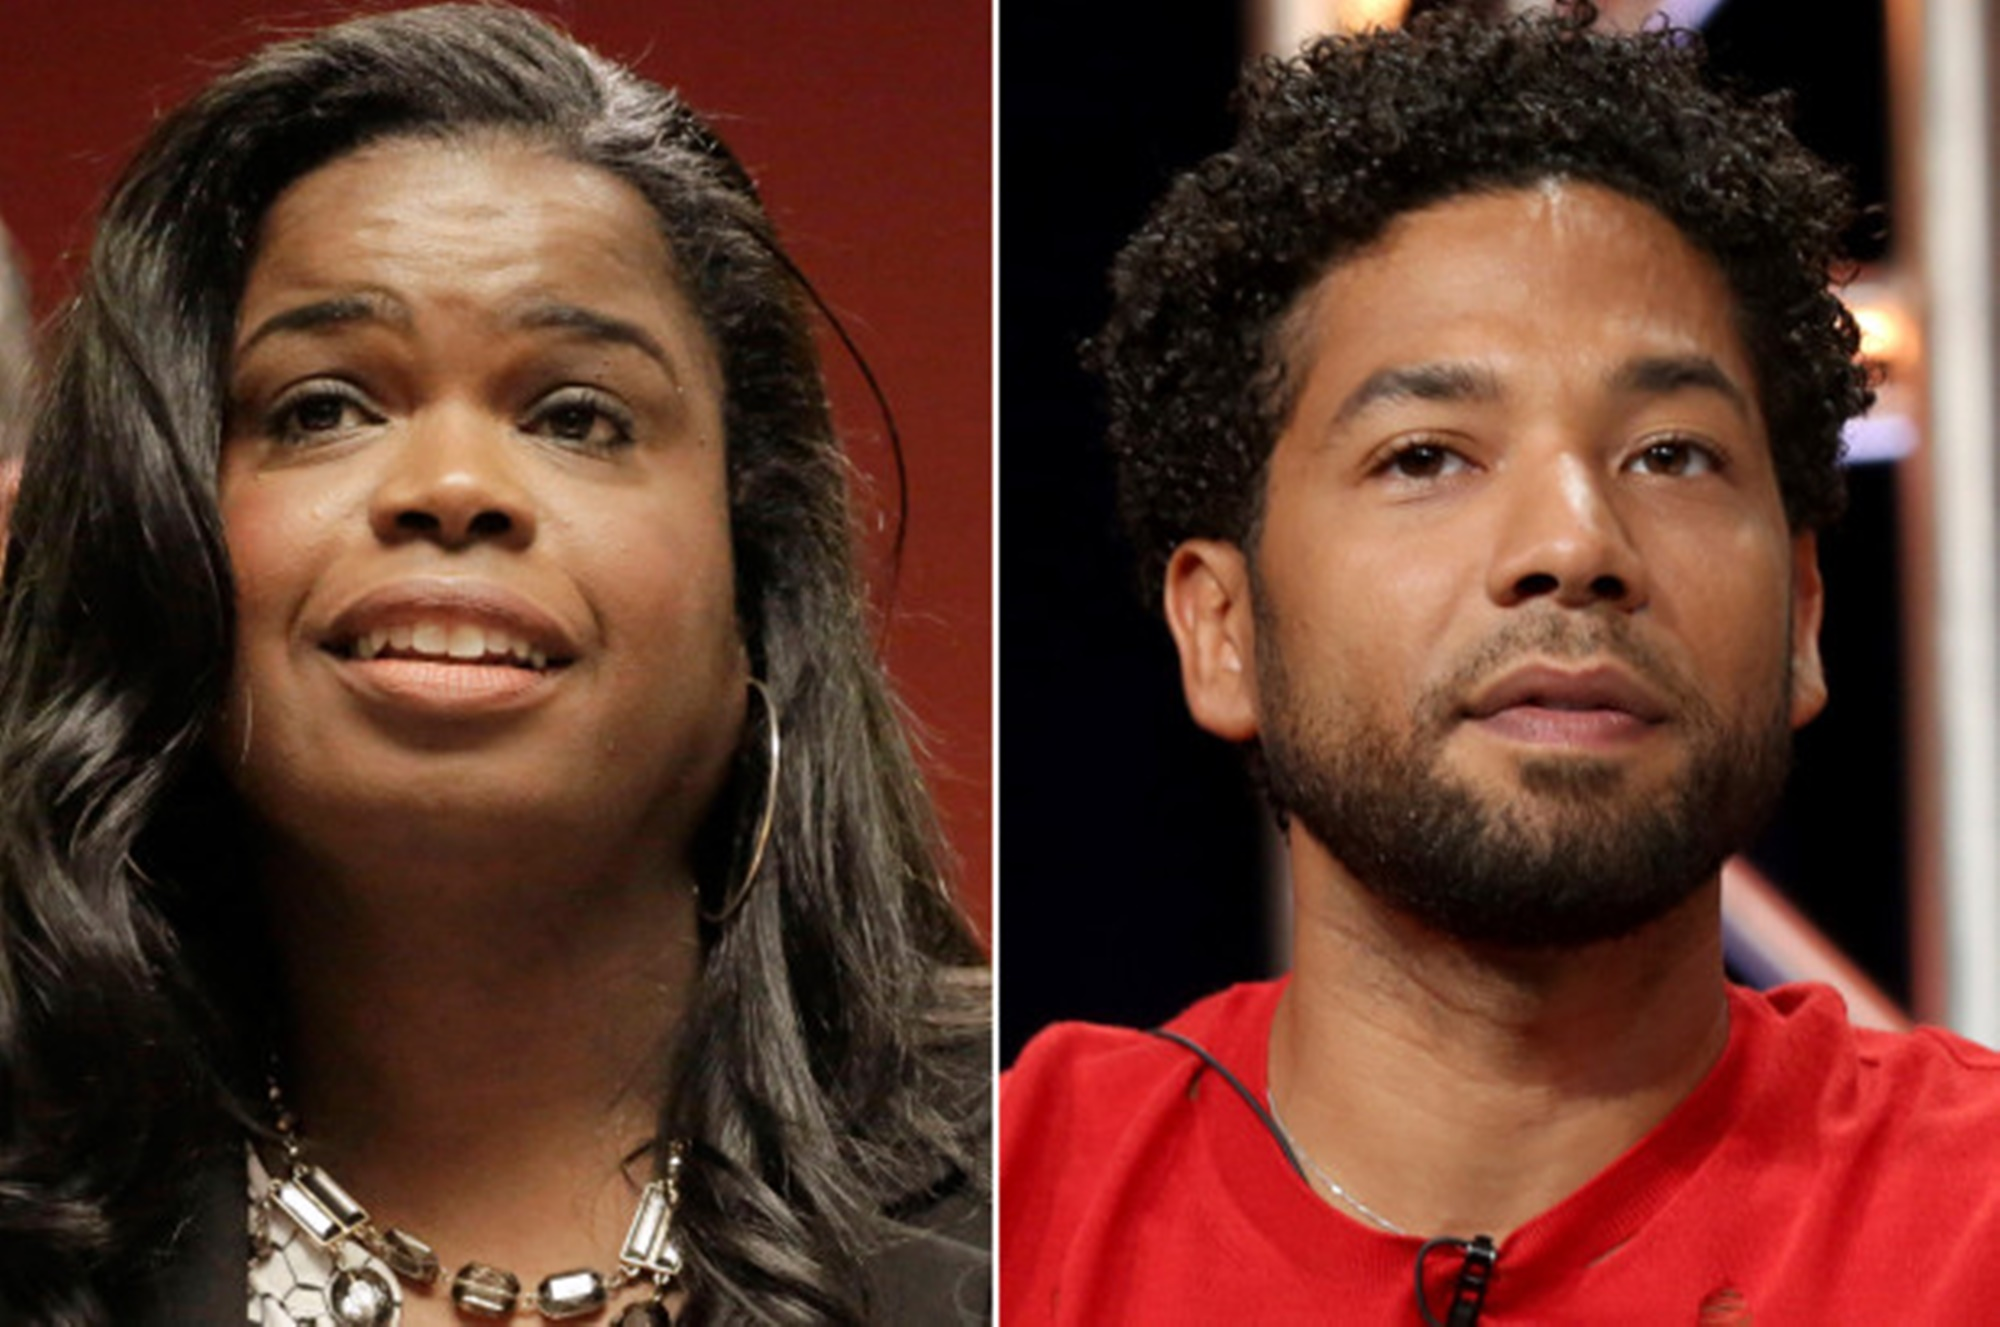 kim-foxx-prosecutor-who-dismissed-jussie-smollett-charges-stands-by-her-decision-critics-still-say-she-is-hiding-something